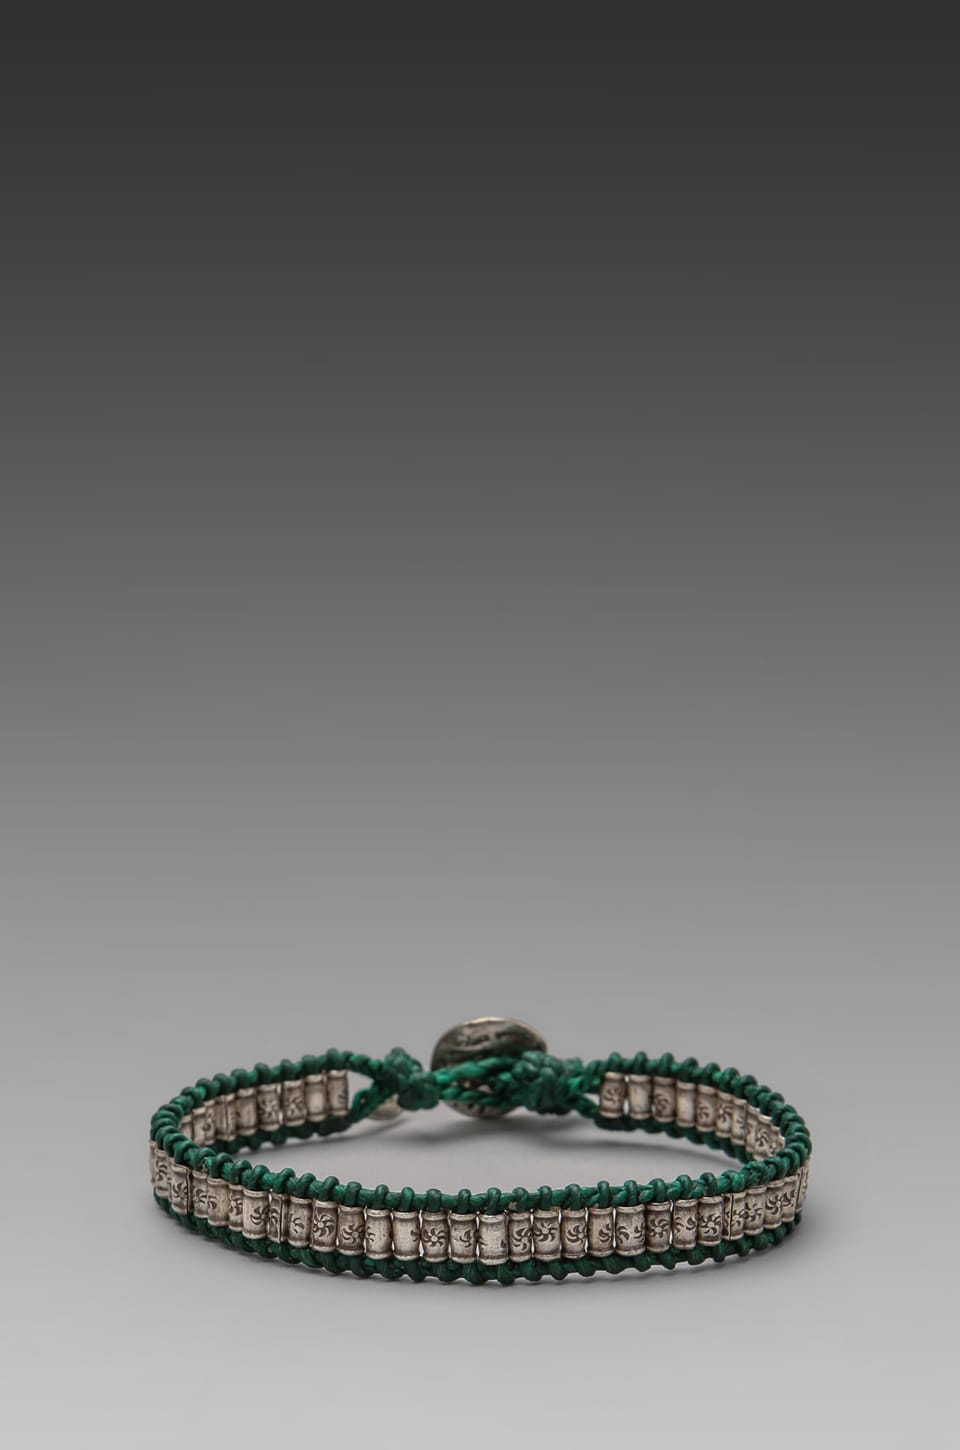 M.Cohen Sterling Sliver Stamped Bead Bracelet in Green